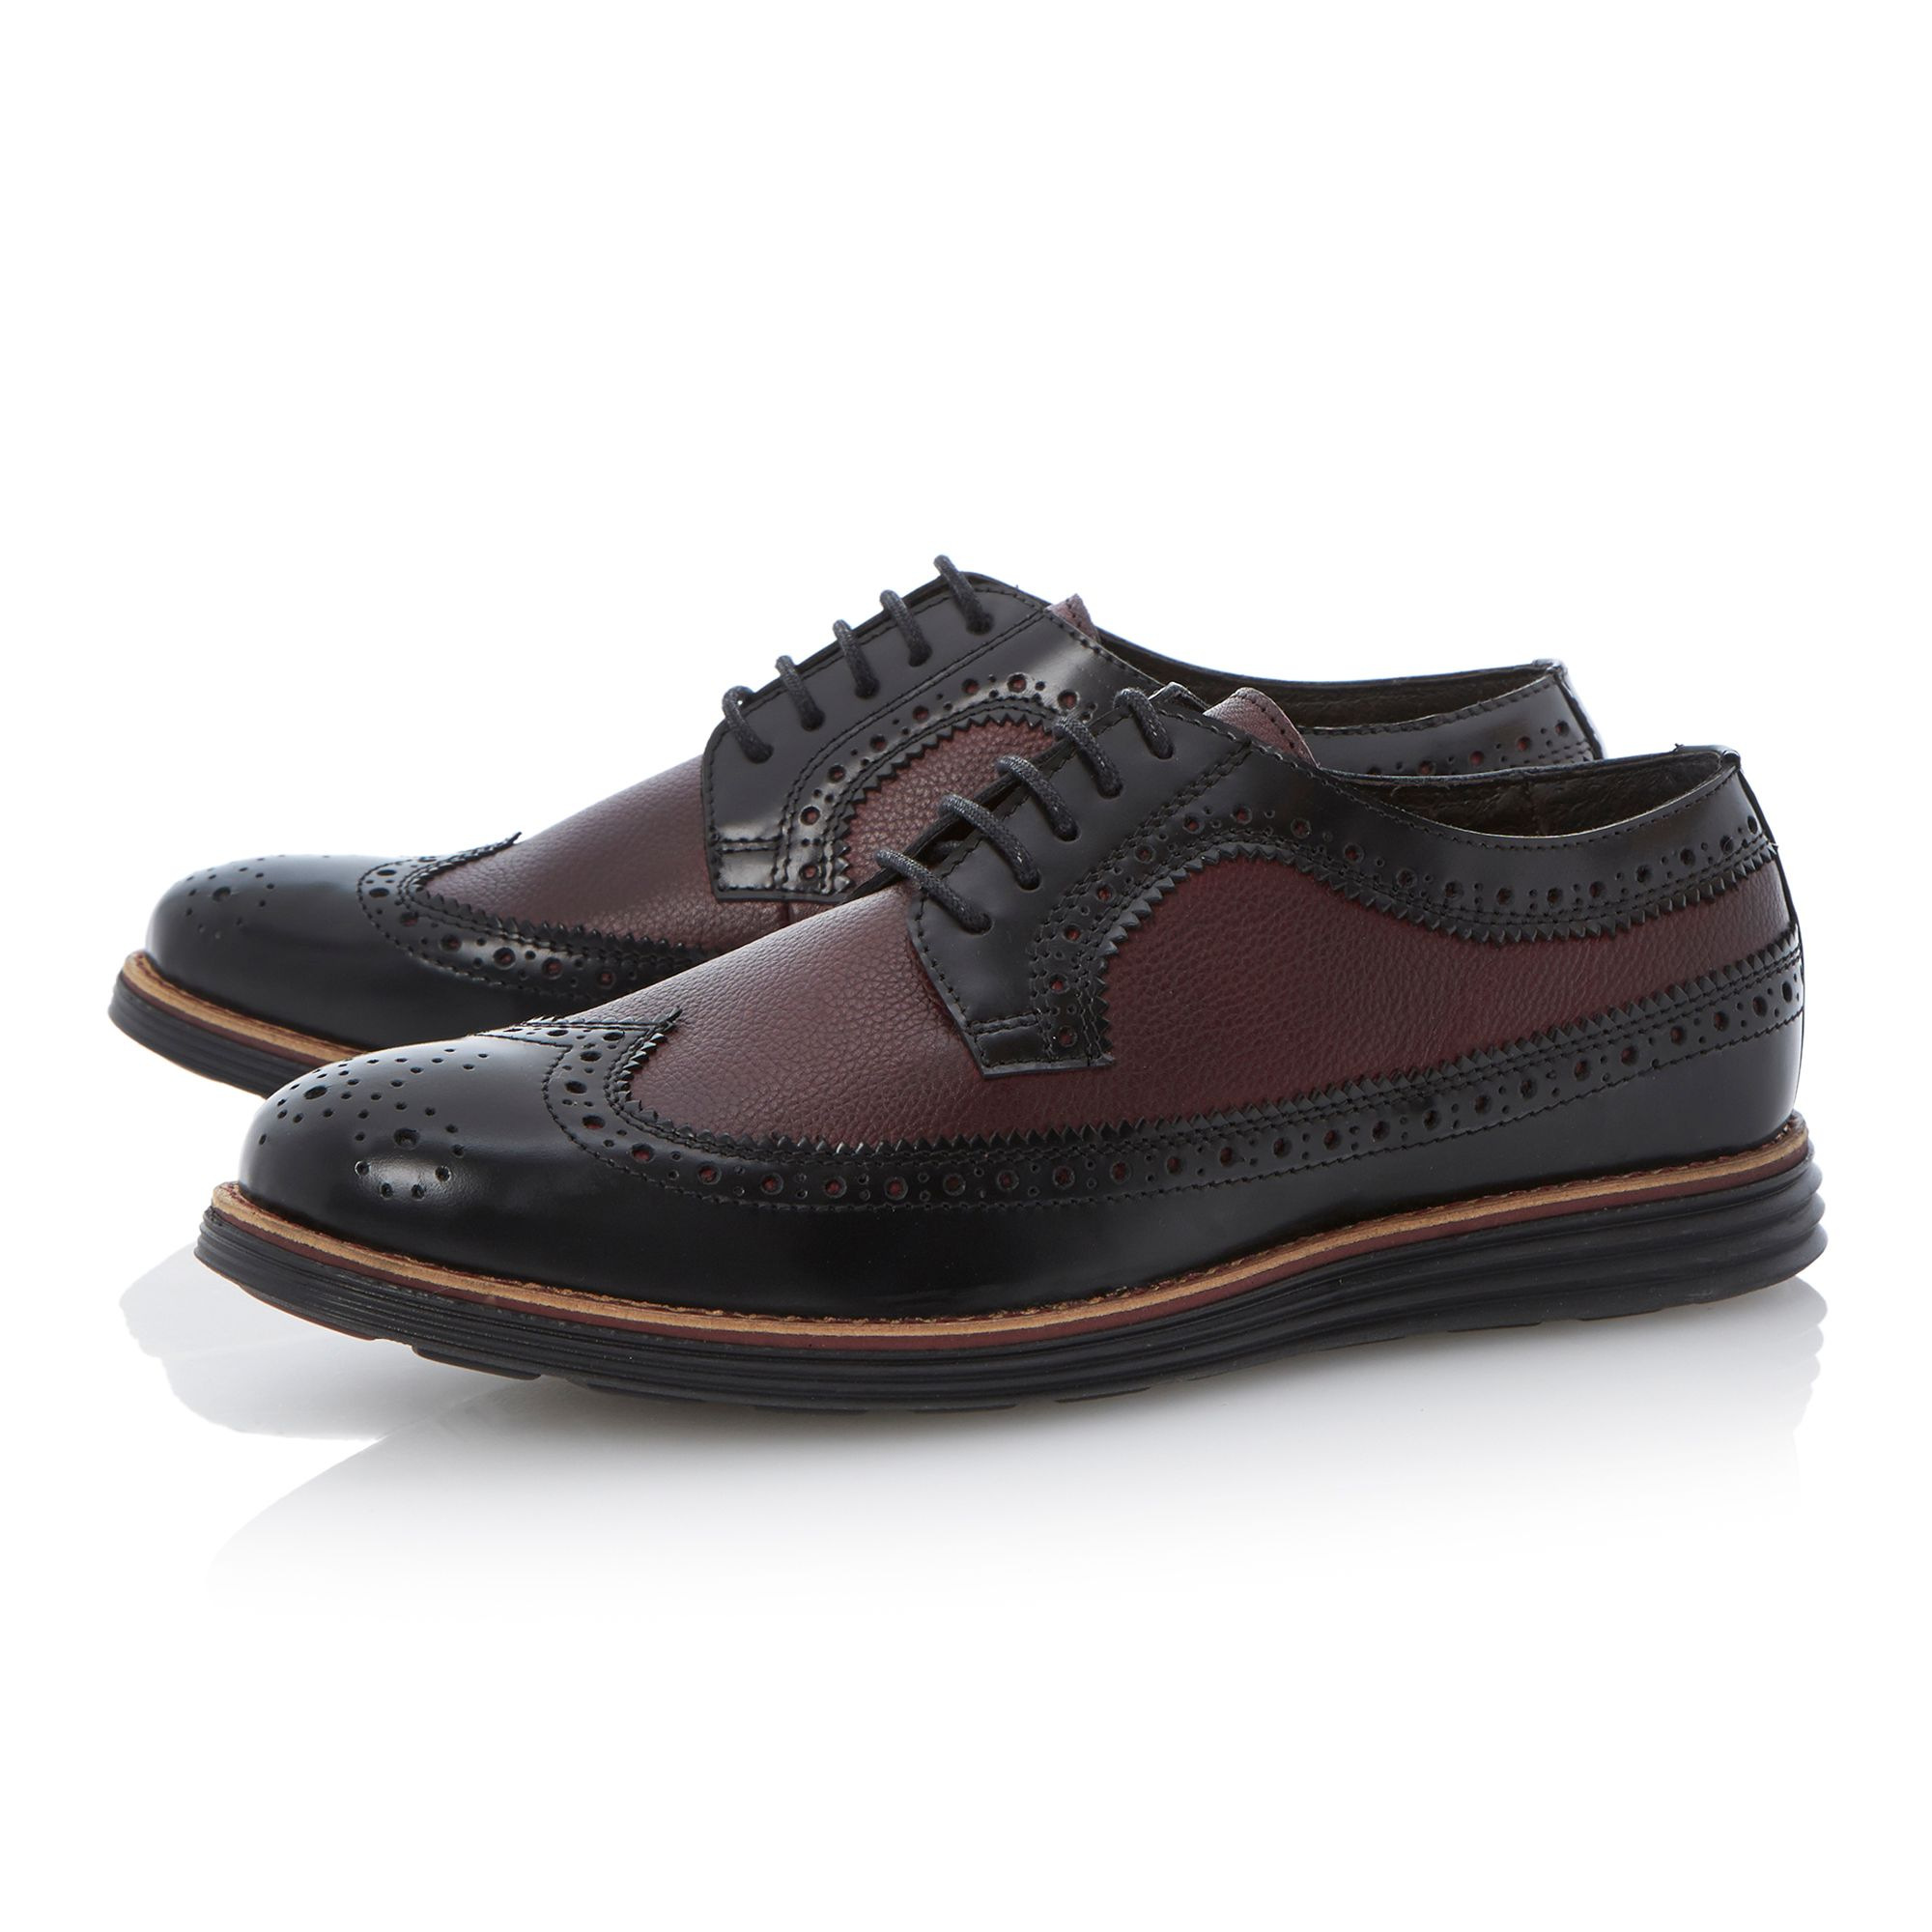 Bayswaters two tone sporty brogues